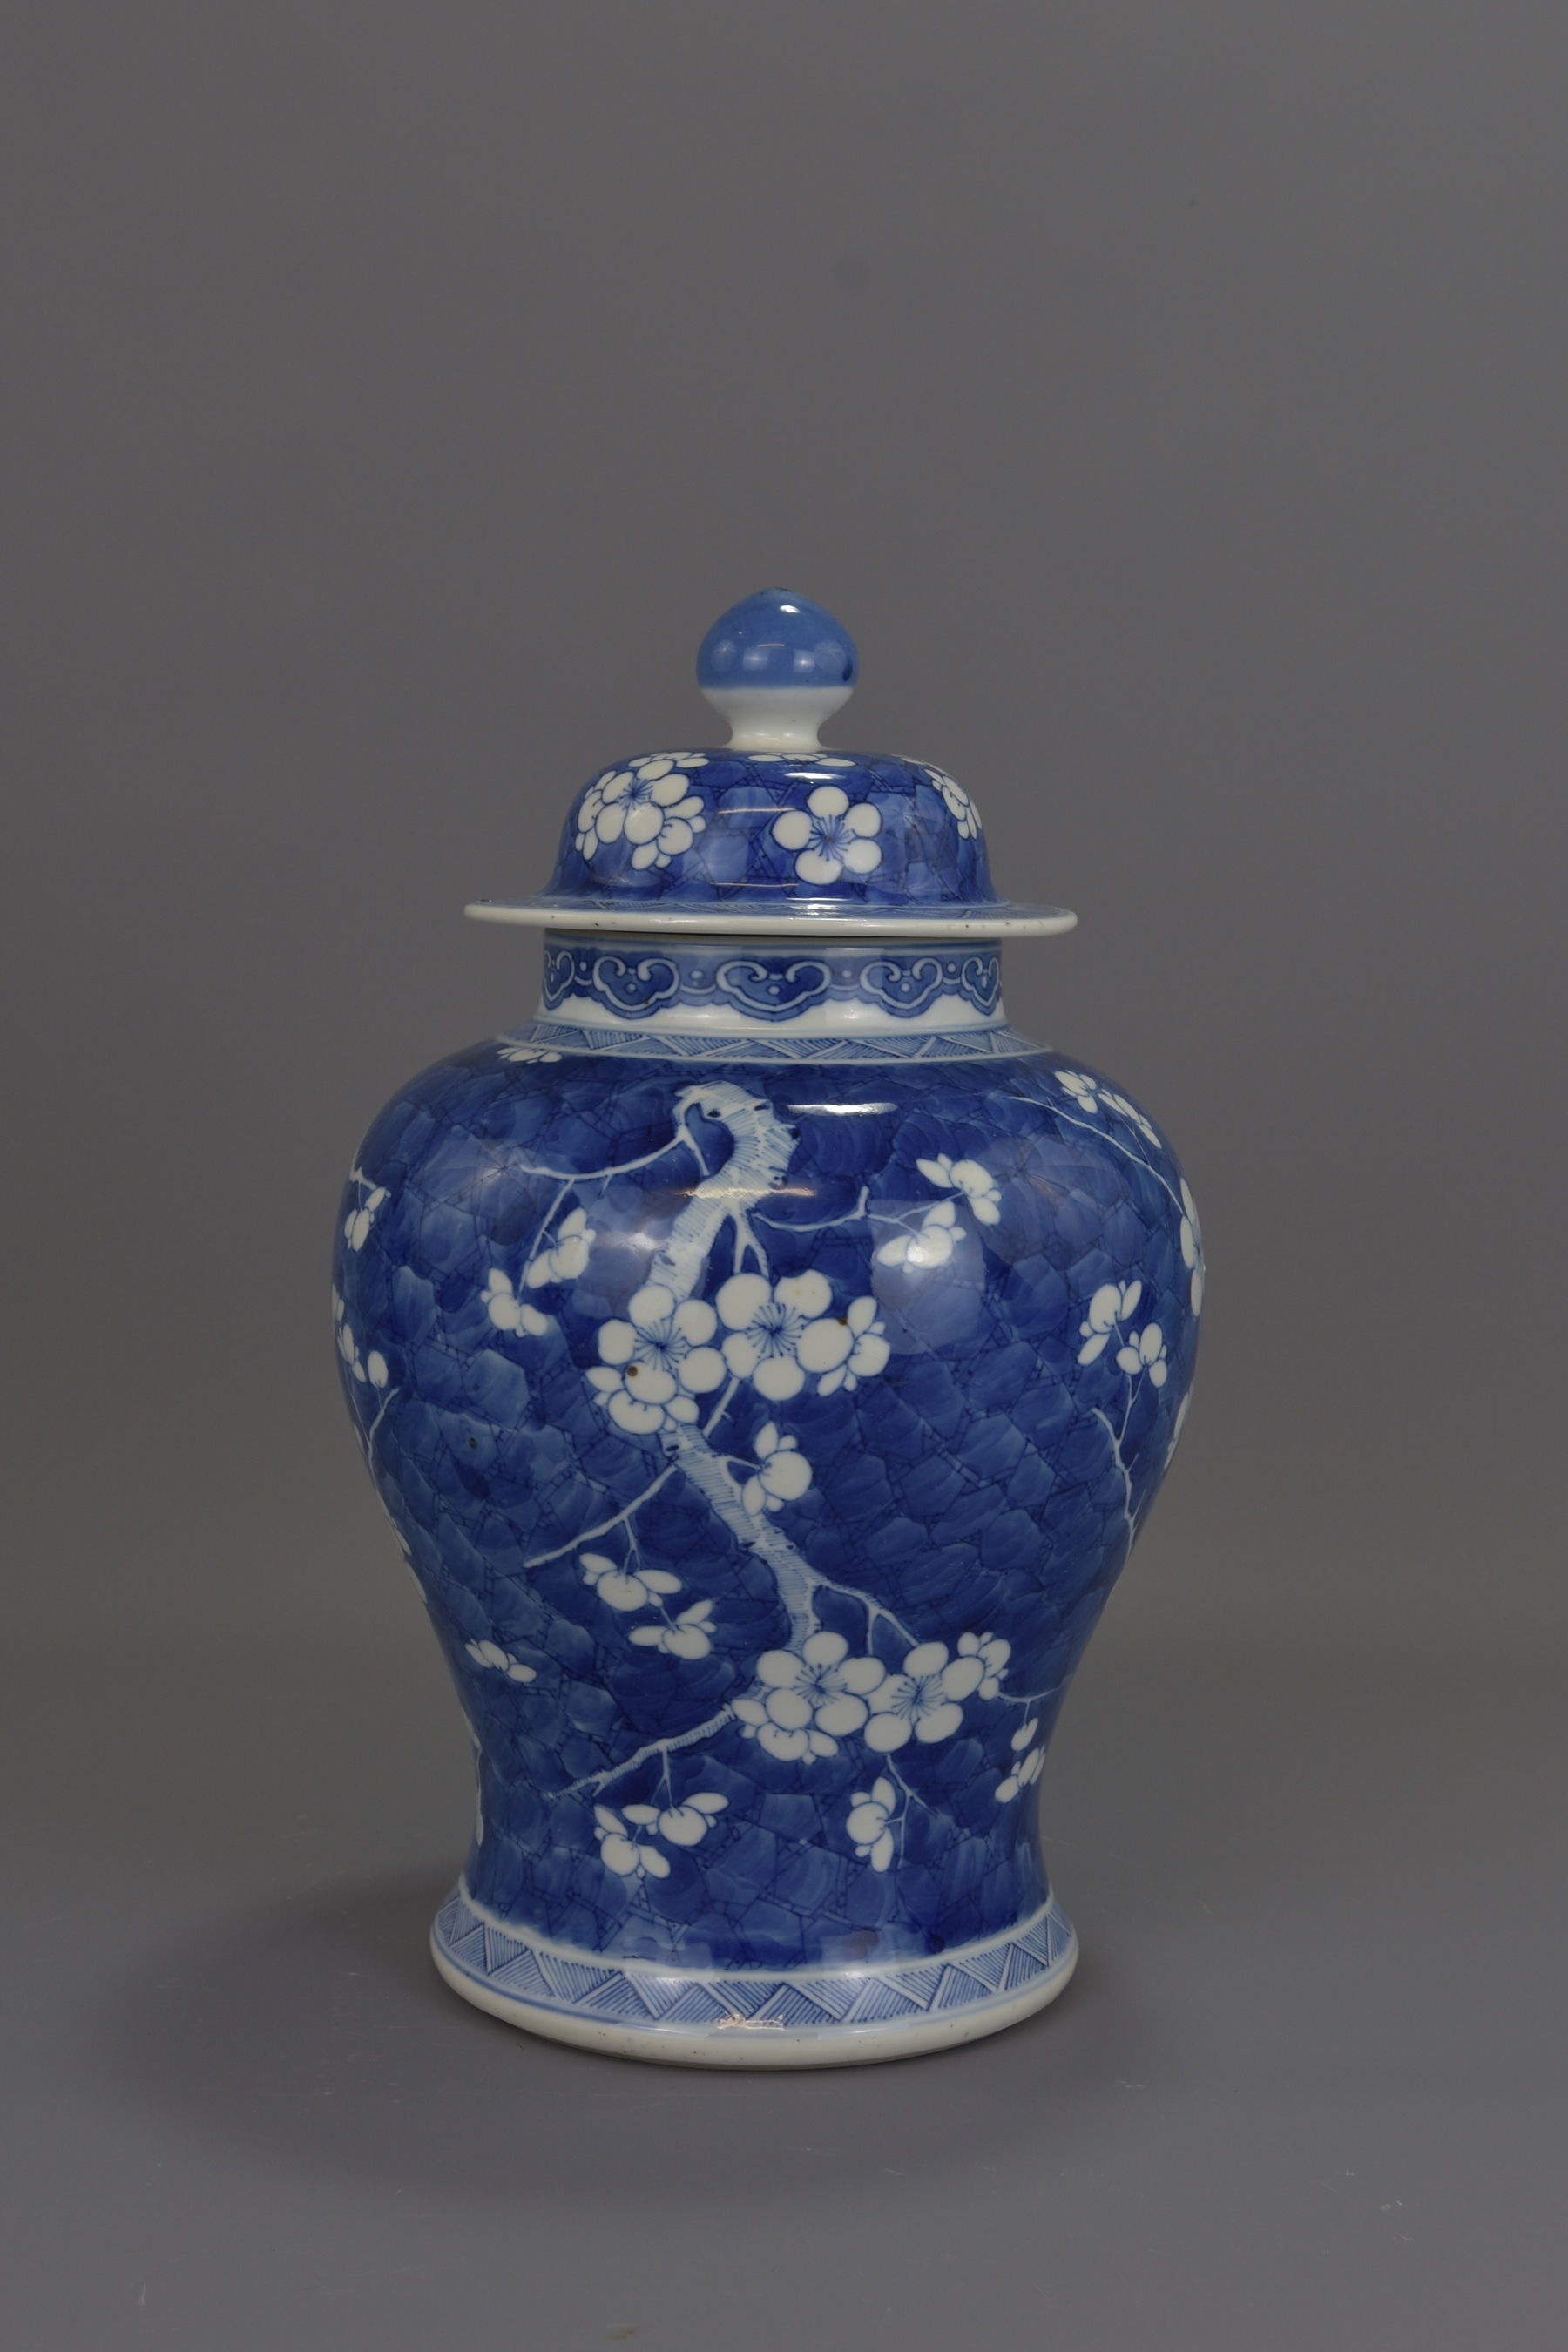 Lot 87 - A CHINESE KANGXI PERIOD BLUE AND WHITE PORCELAIN V